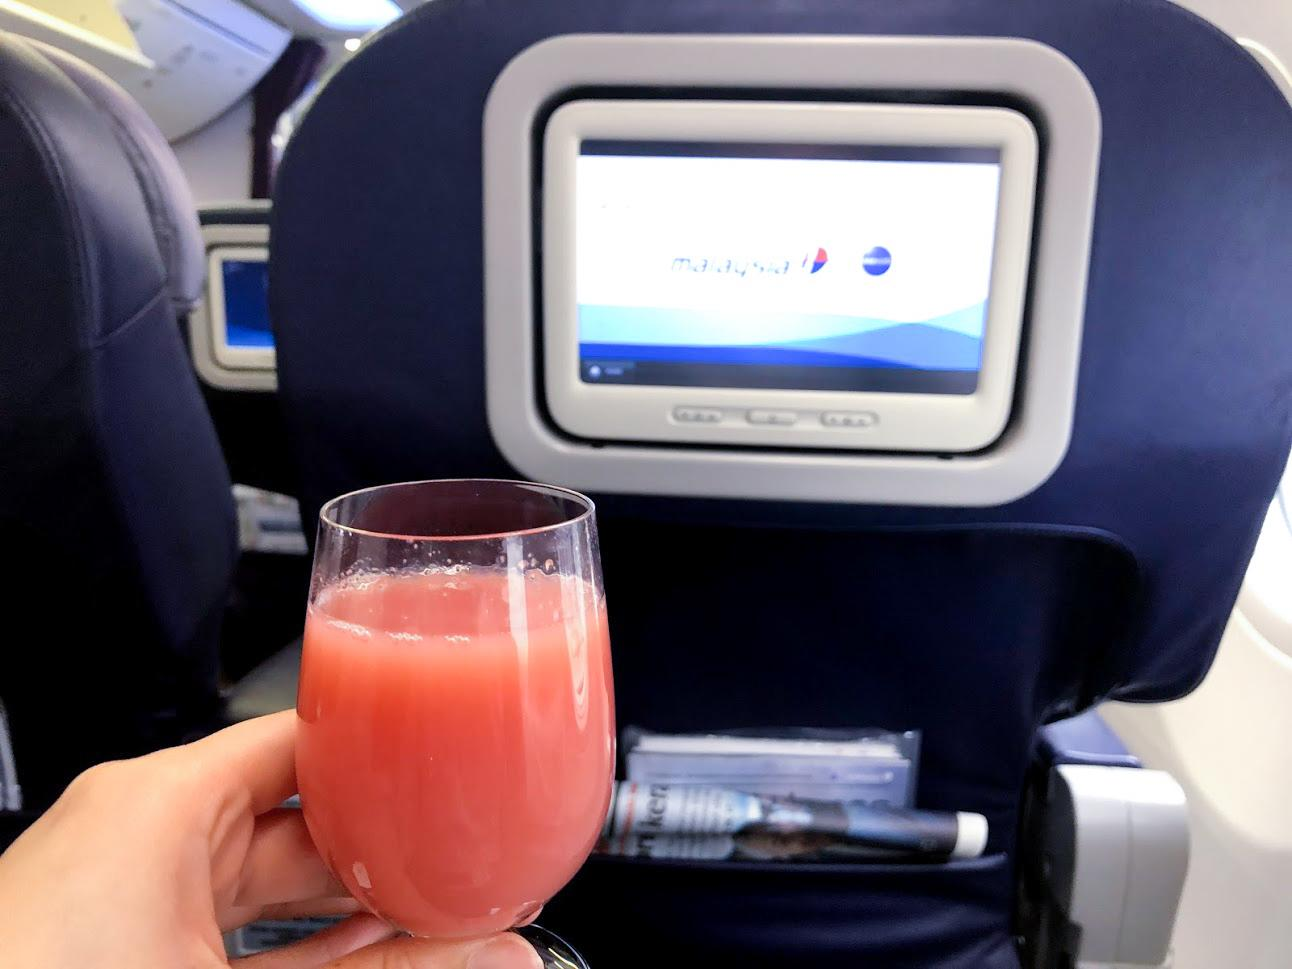 Malaysia Airlines 737 Business Class overview | Point Hacks